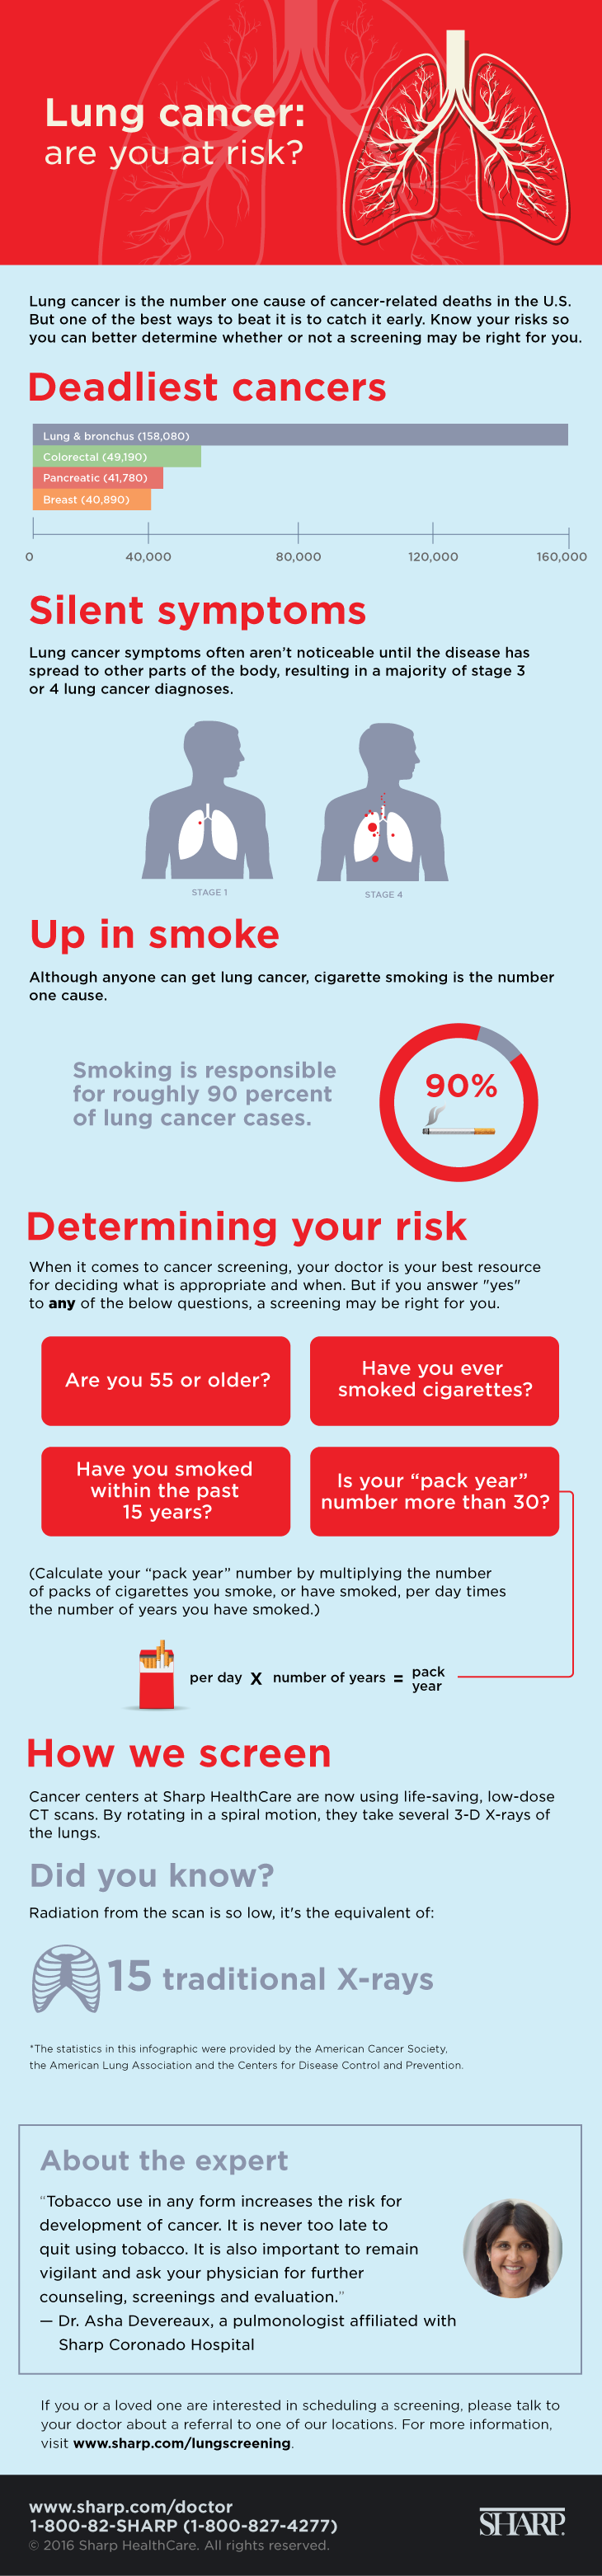 Lung cancer screening infographic